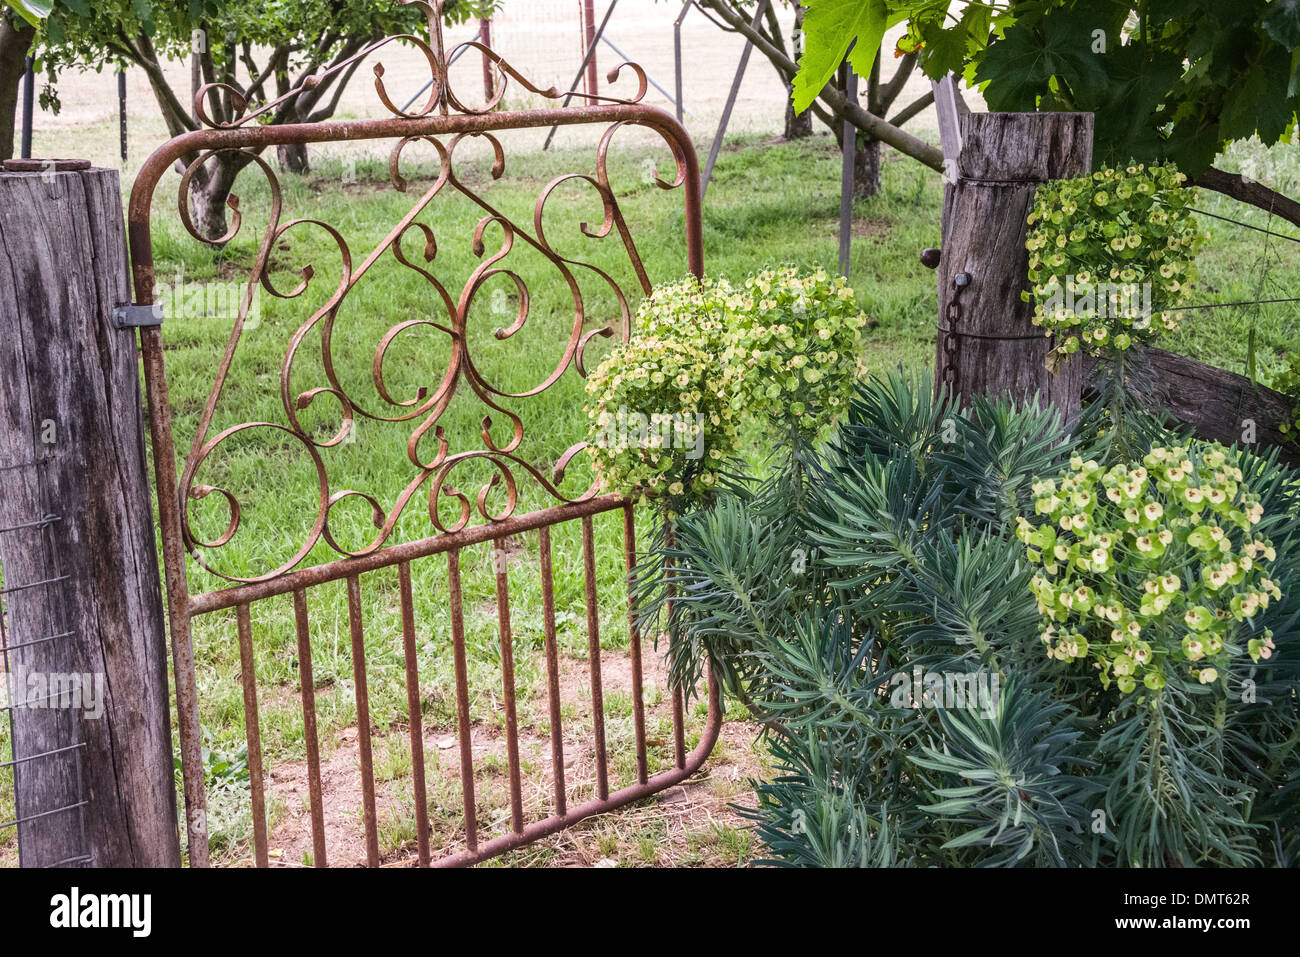 Good Old Garden Gate Iron On Farm With Herbs Surrounding Leading To Fruit Orchard